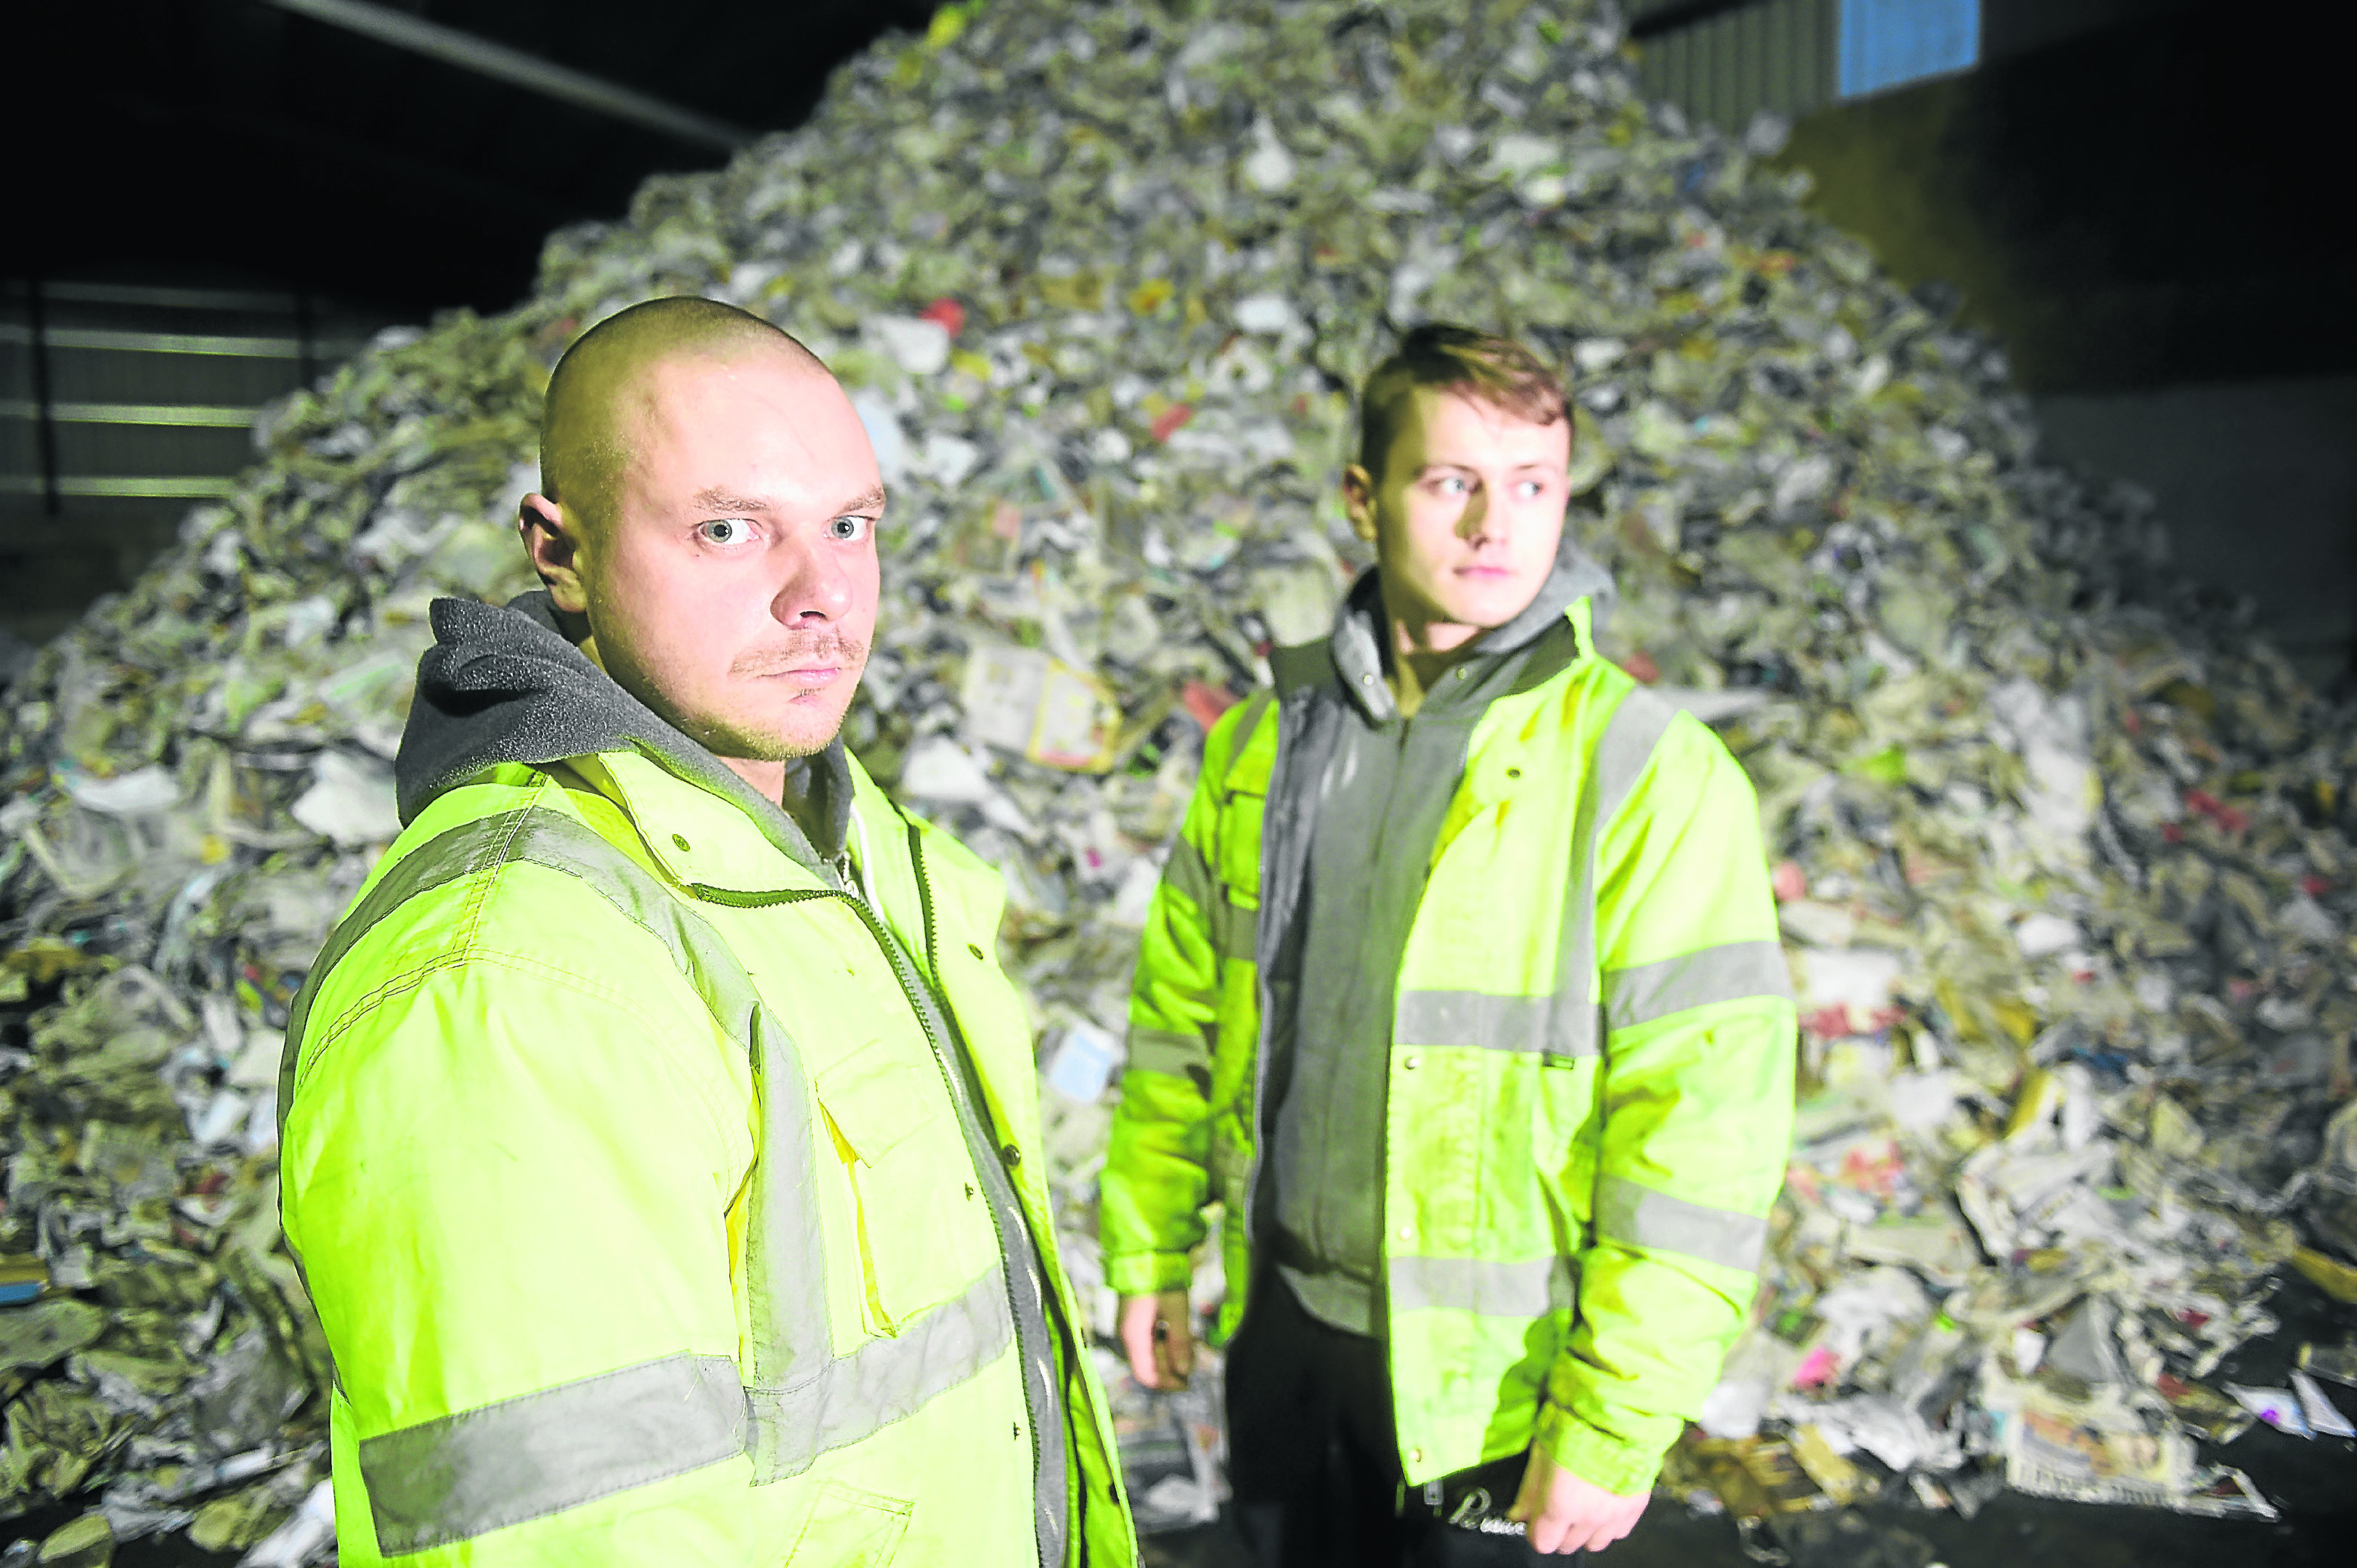 Munros Evanton Transfer Station. Staff members Kamil Rupik (left) and Gracjan Dabrowski. Picture by Sandy McCook.